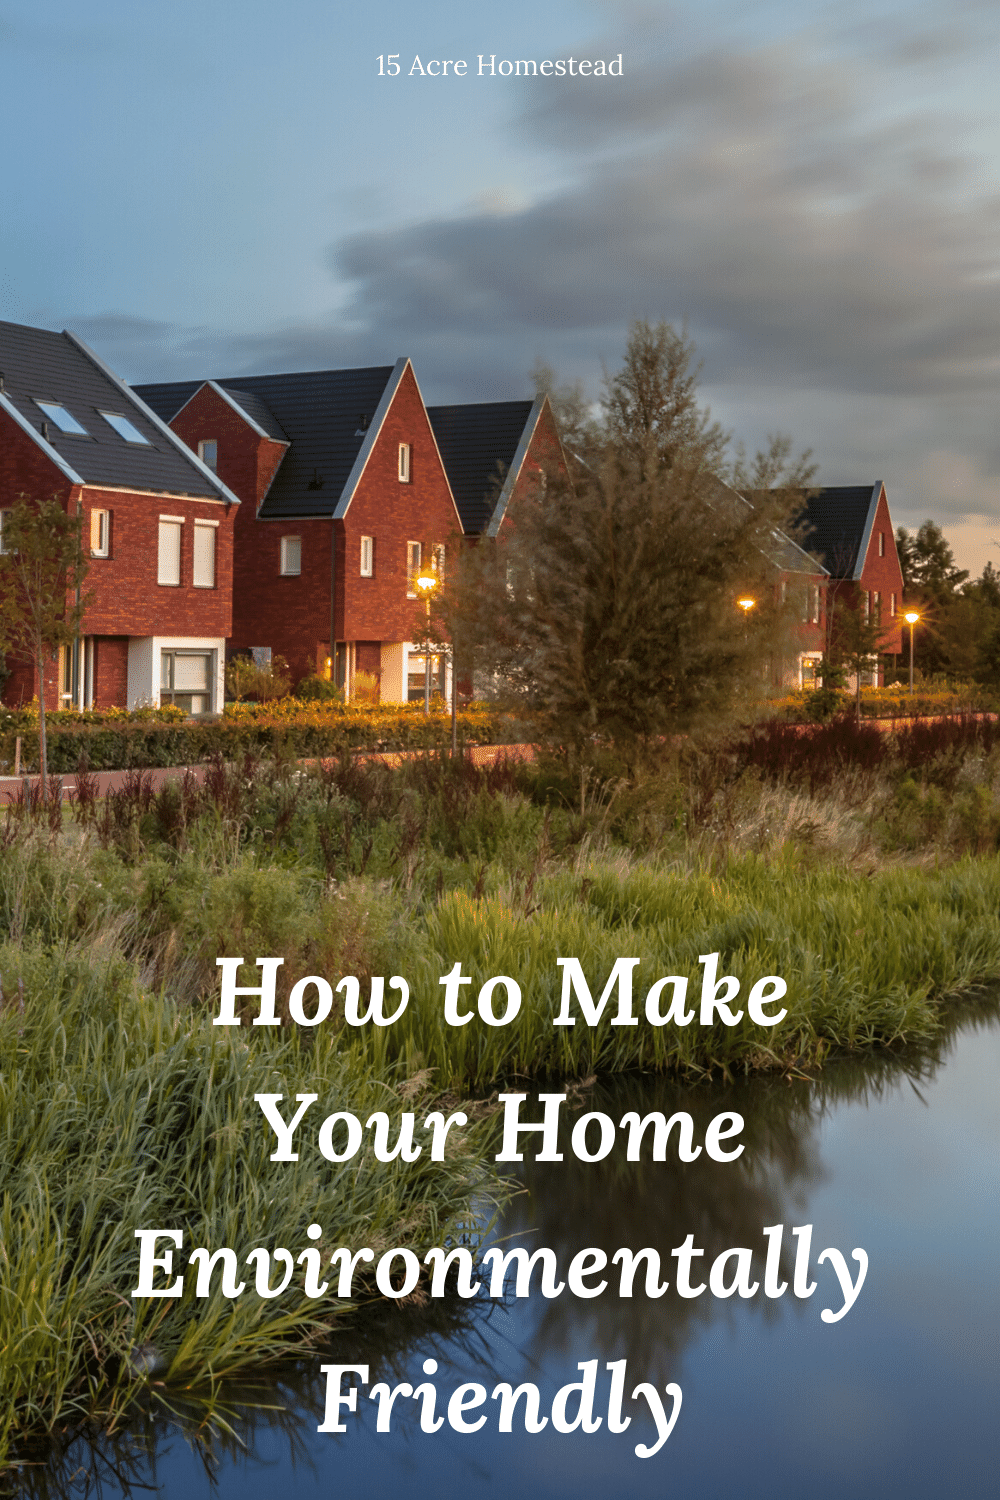 There are so many ways to make your home environmentally friendly and these tips should help!